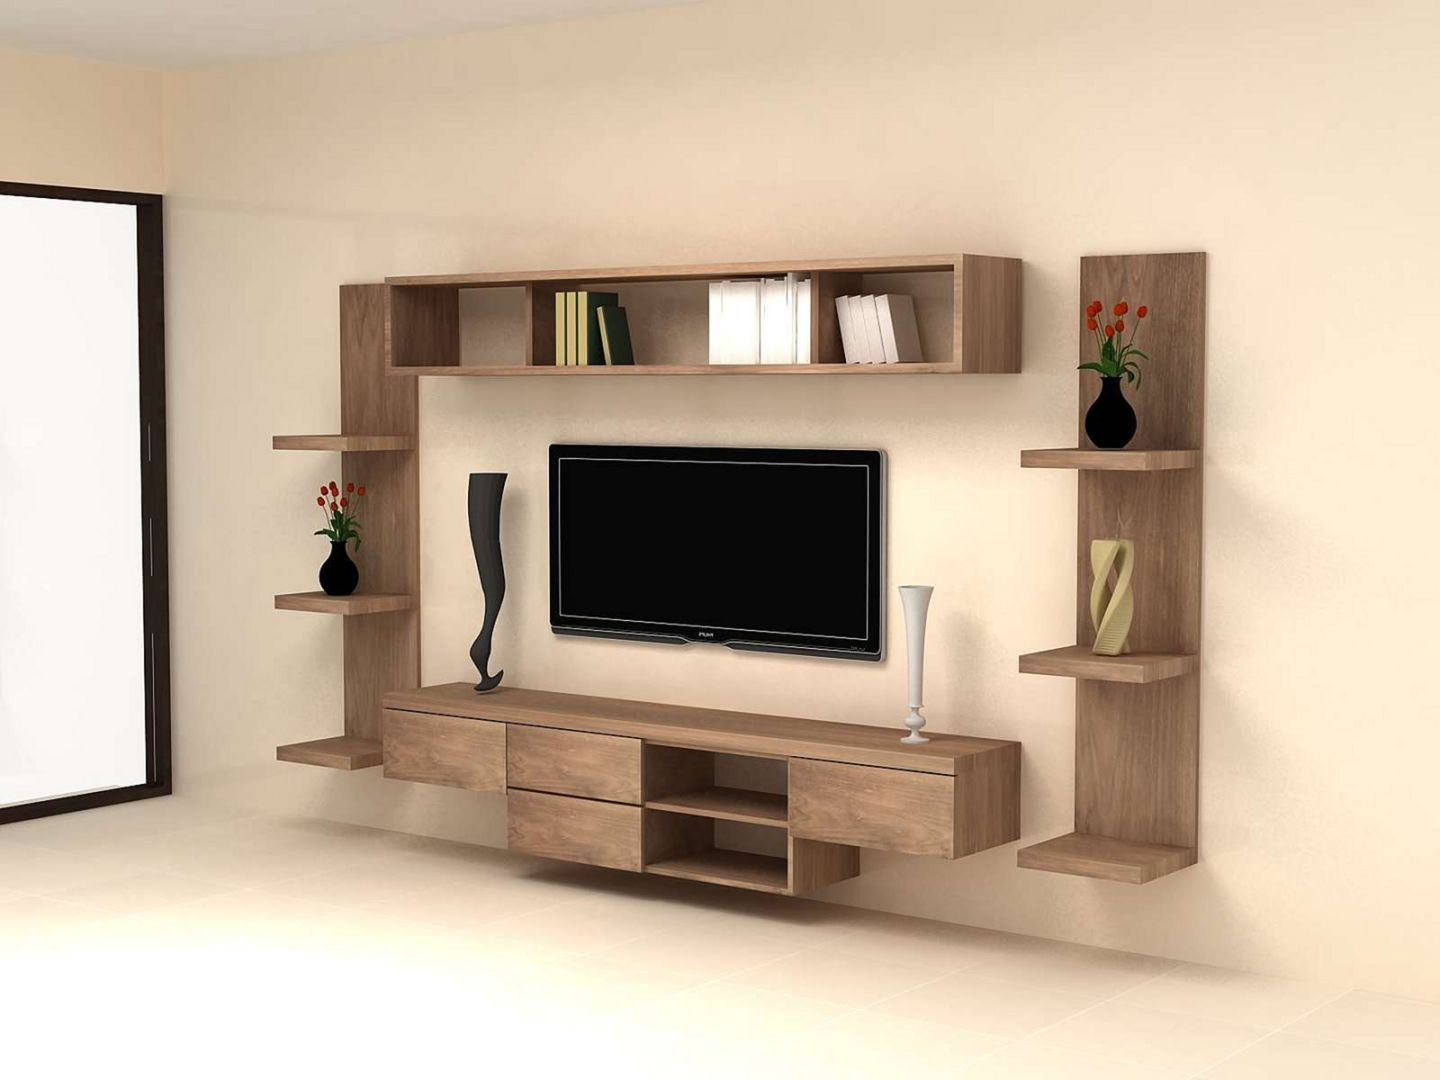 Modern Tv Cabinets Design 0251 Modern Tv Cabinets Design 0251 Design Ideas And Photos Modern Tv Wall Units Living Room Tv Wall Living Room Tv #small #wall #units #for #living #room